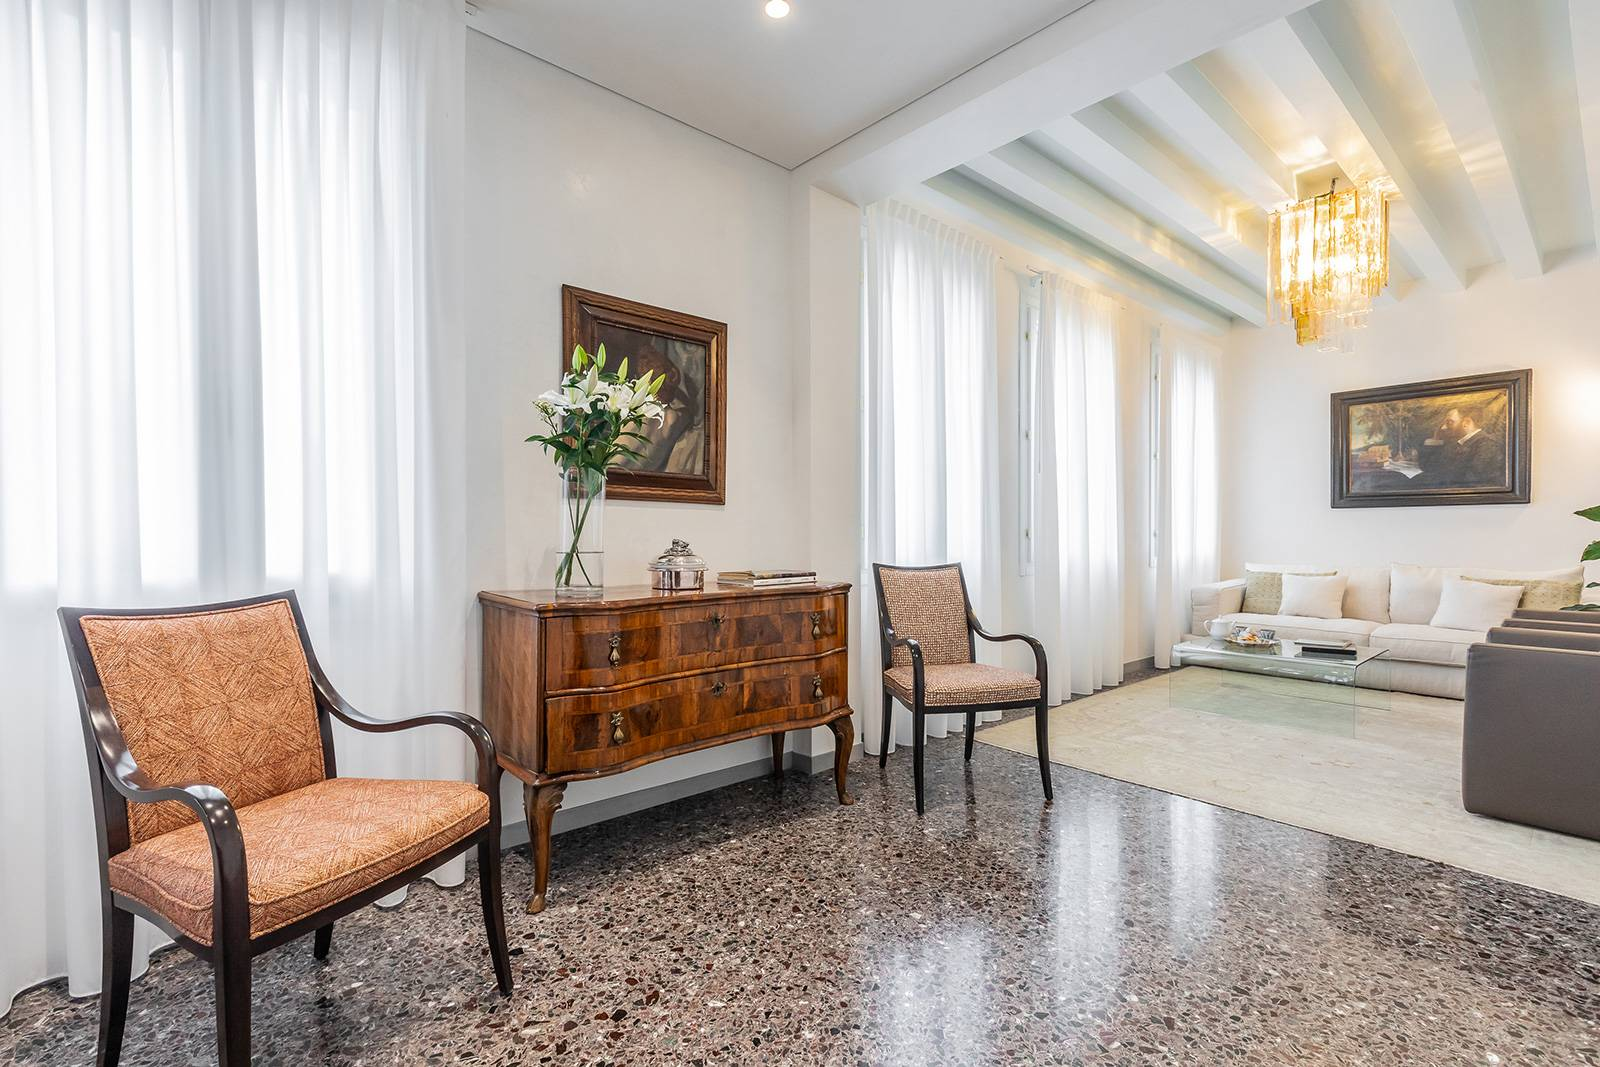 the beautiful Terrazzo Veneziano flooring and the antique wooden beamed ceiling perfectly blends with antique furniture